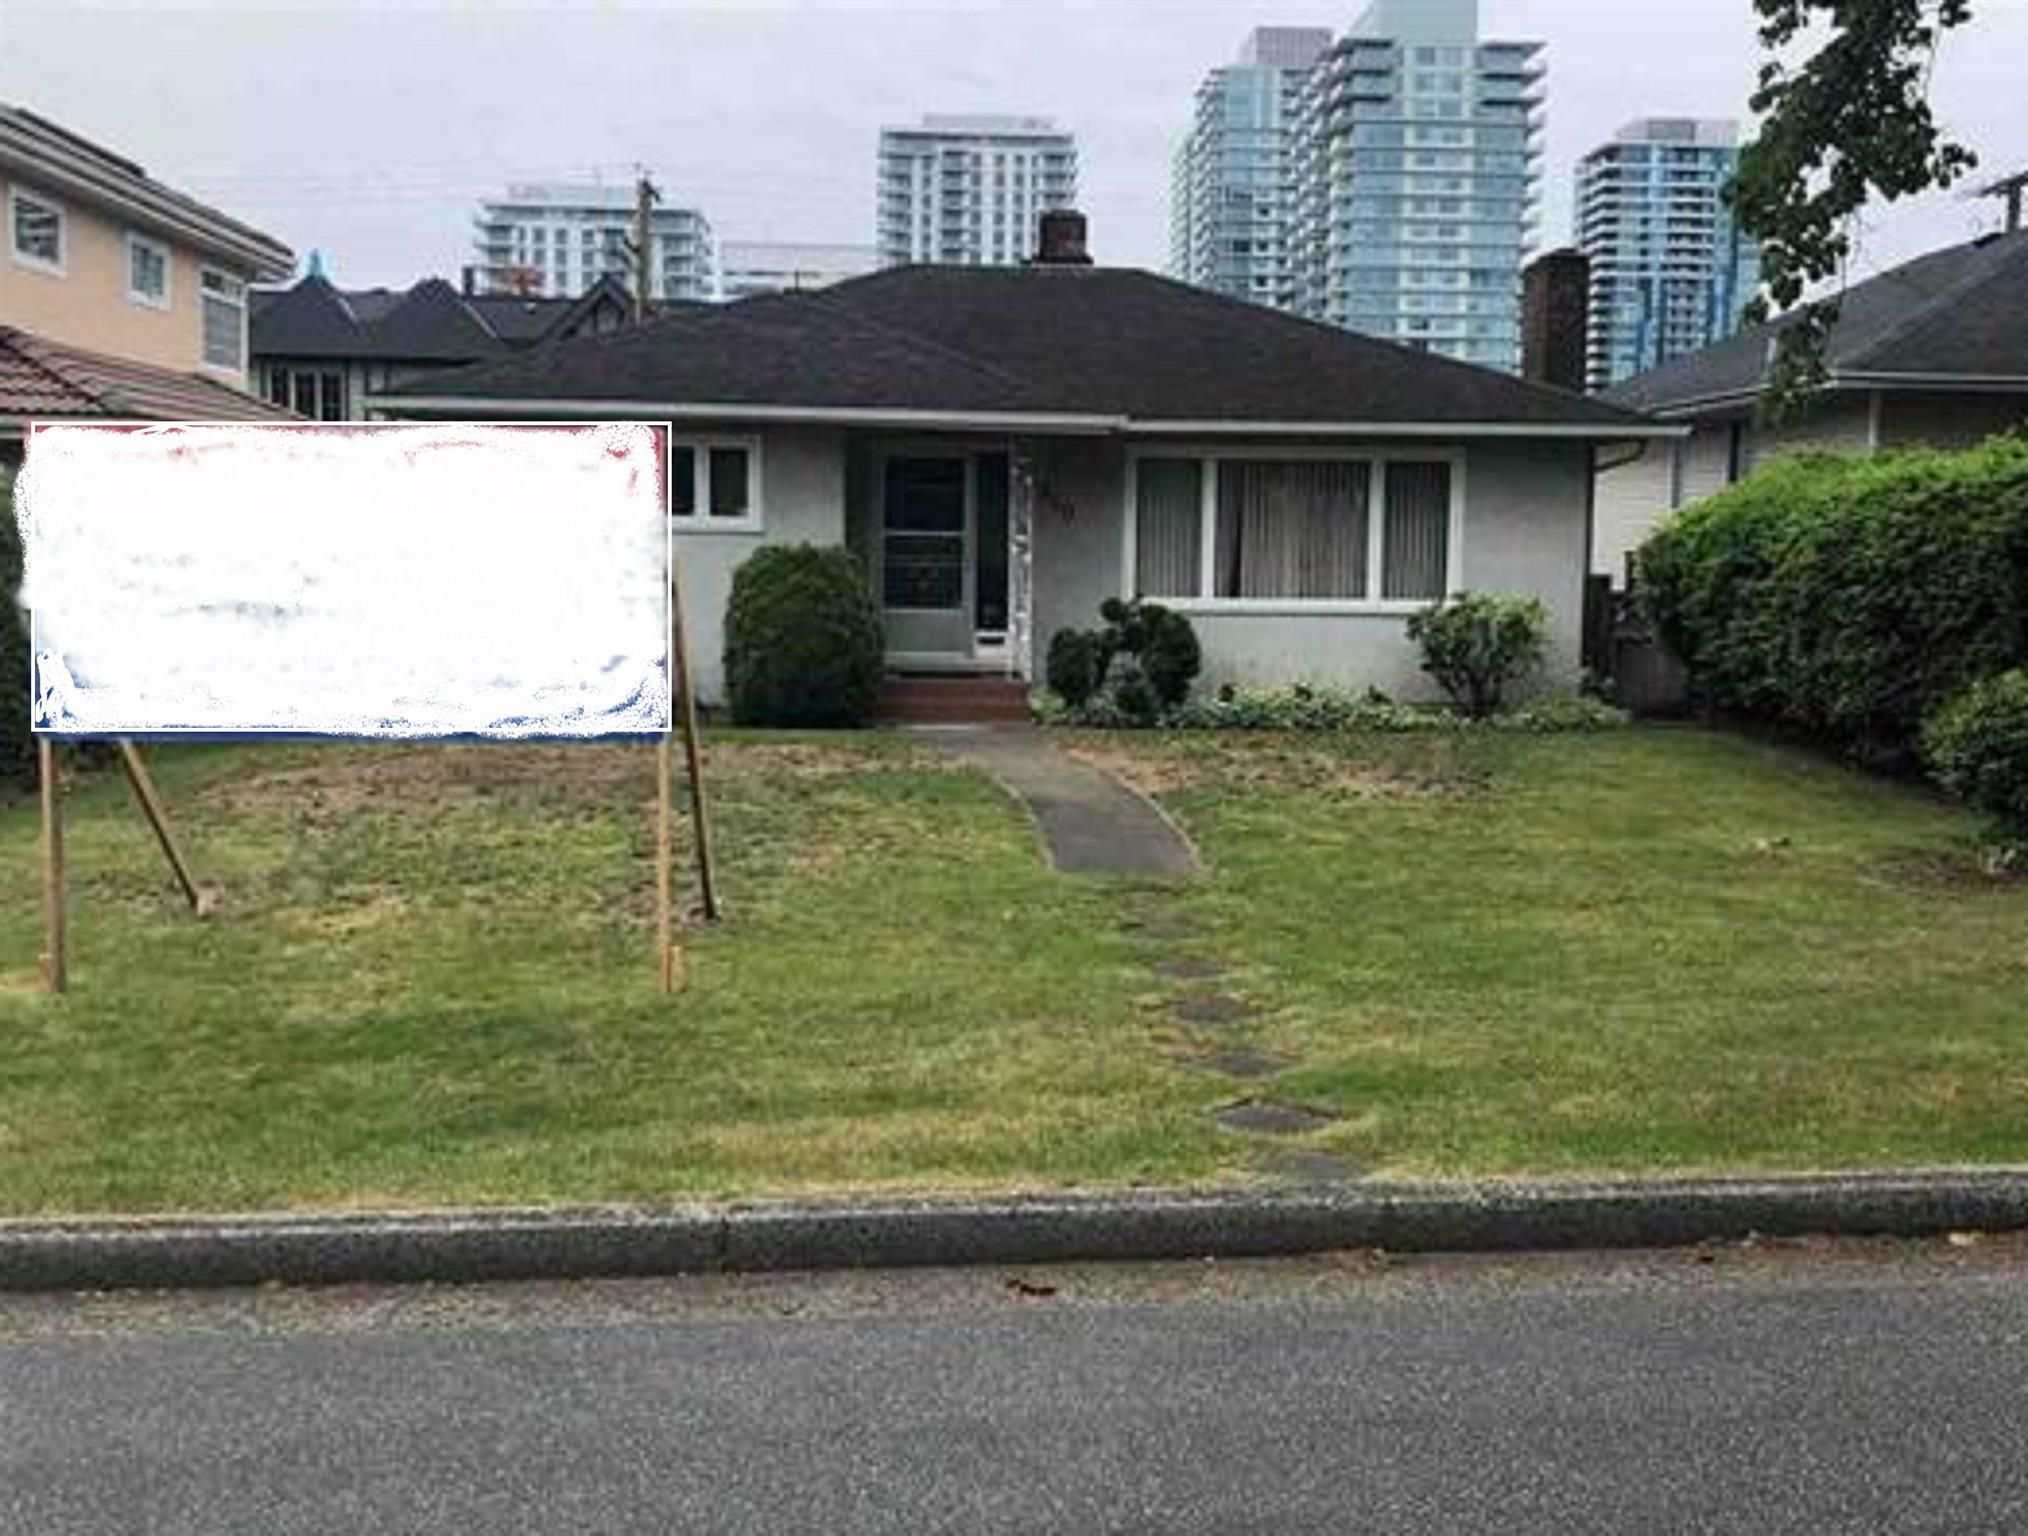 Main Photo: 450 W 62ND Avenue in Vancouver: Marpole House for sale (Vancouver West)  : MLS®# R2546589